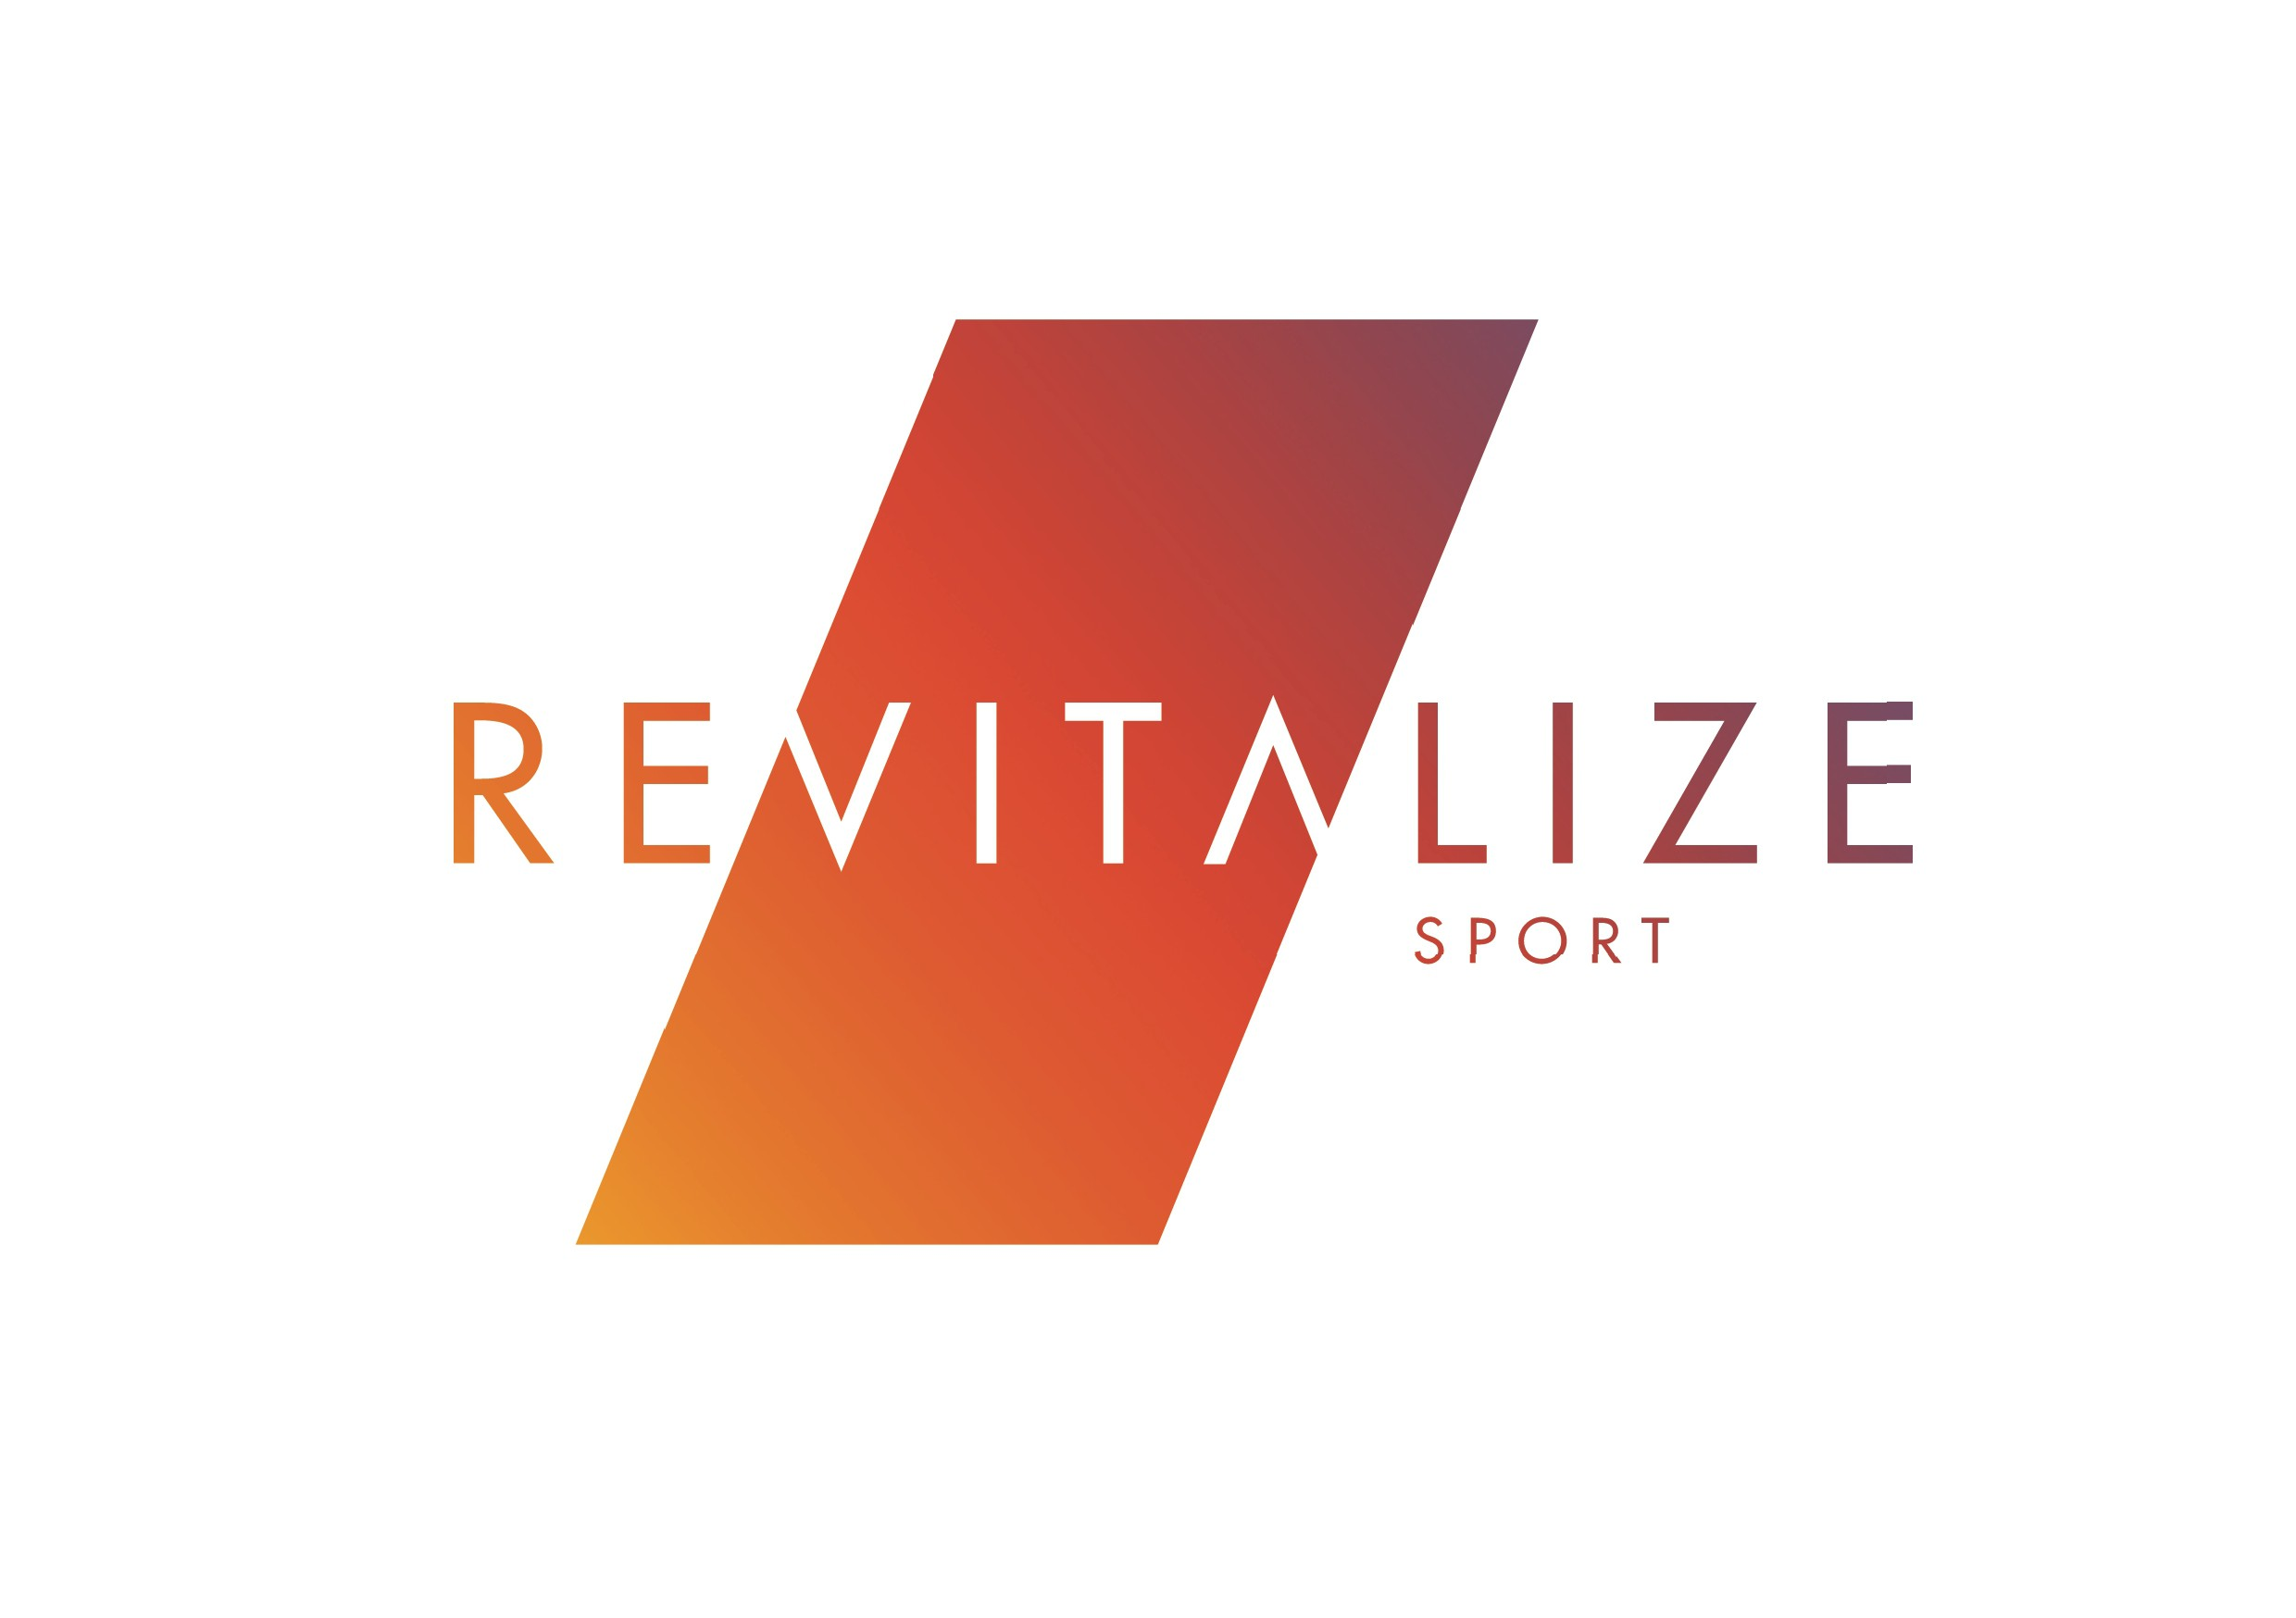 Create an awesome logo and inspiring website for Revitalize, an amazing new coaching brand